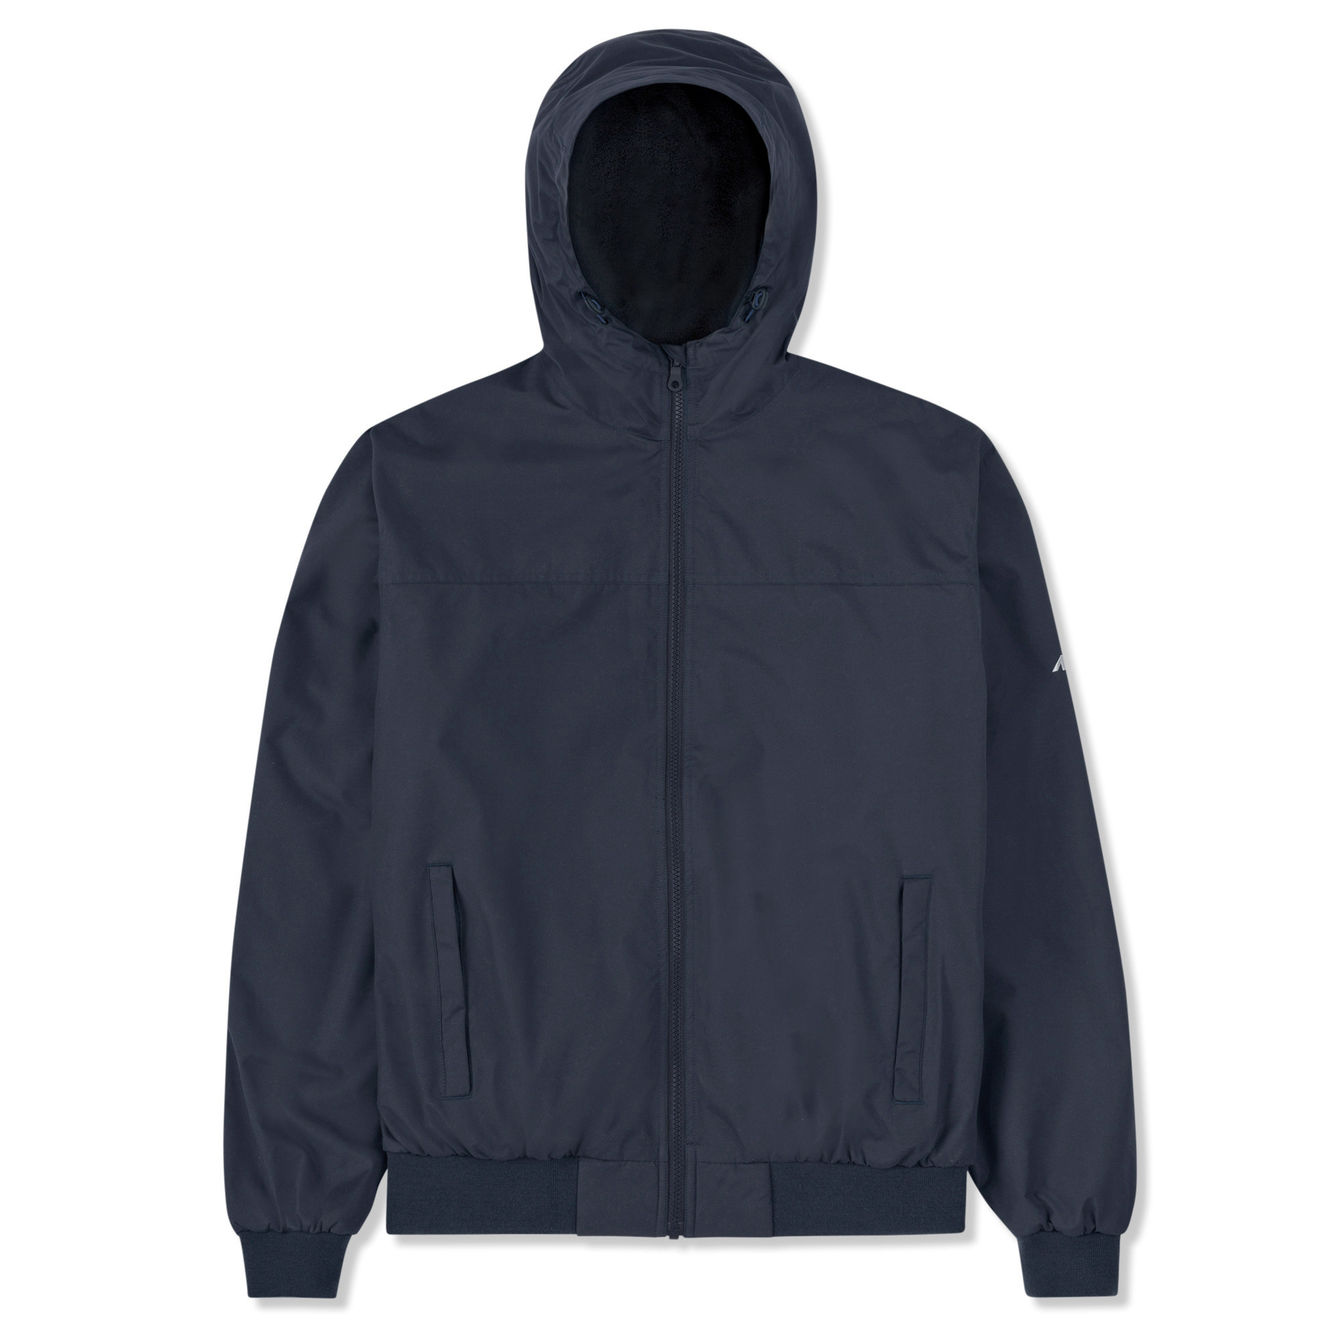 HOODED SNUG BLOUSON JKT